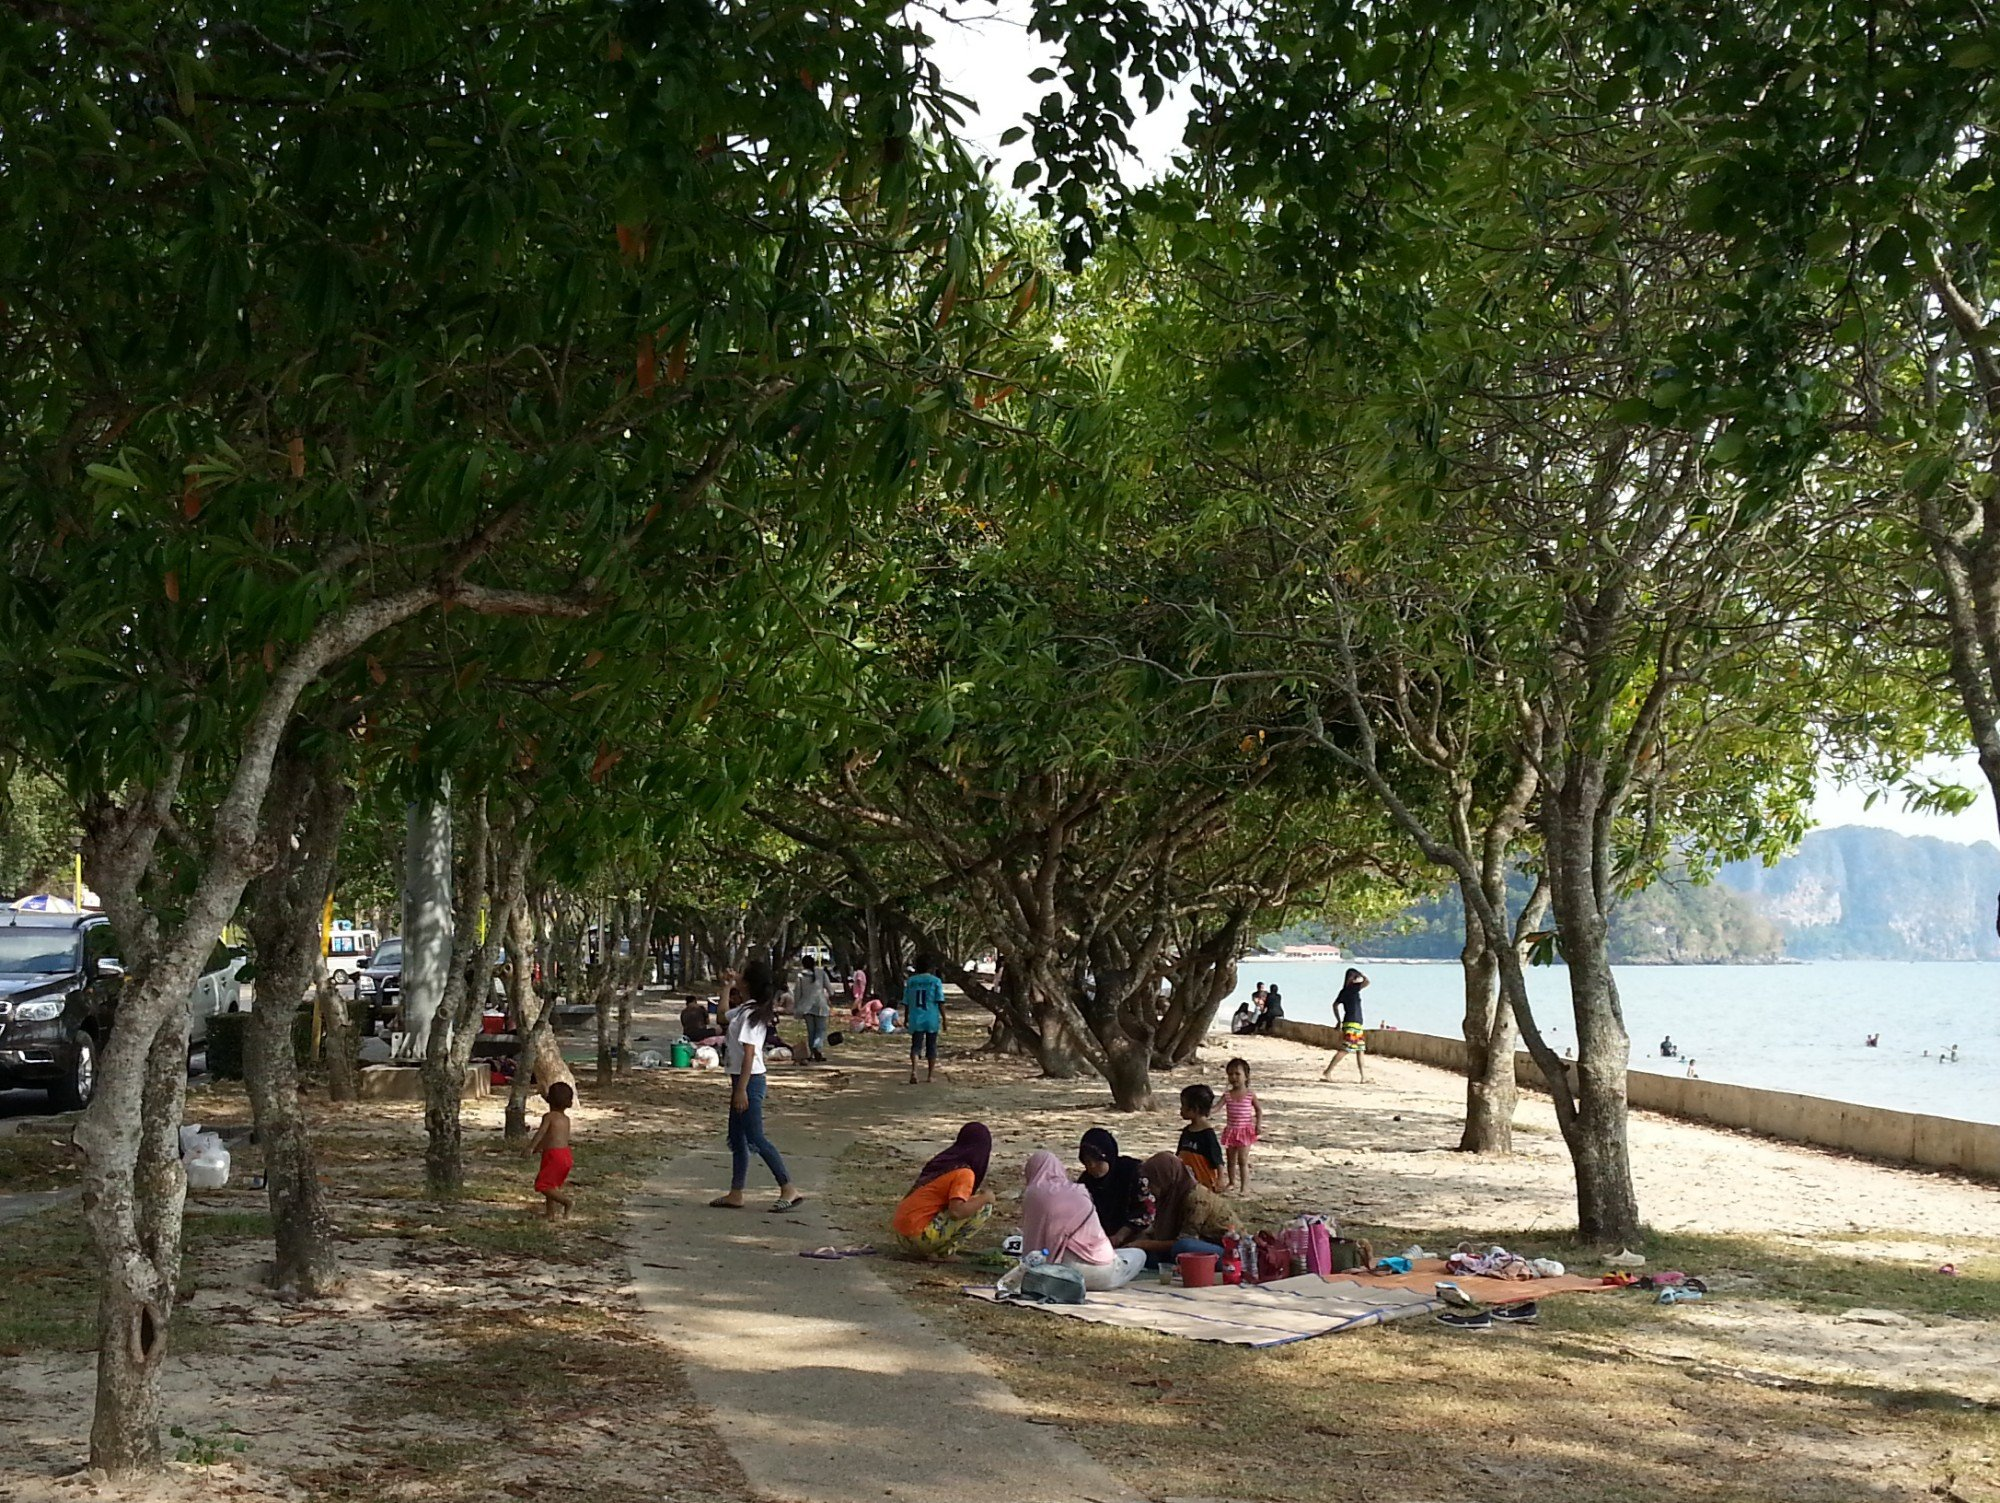 Noppharat Thara Beach is popular spot for picnics